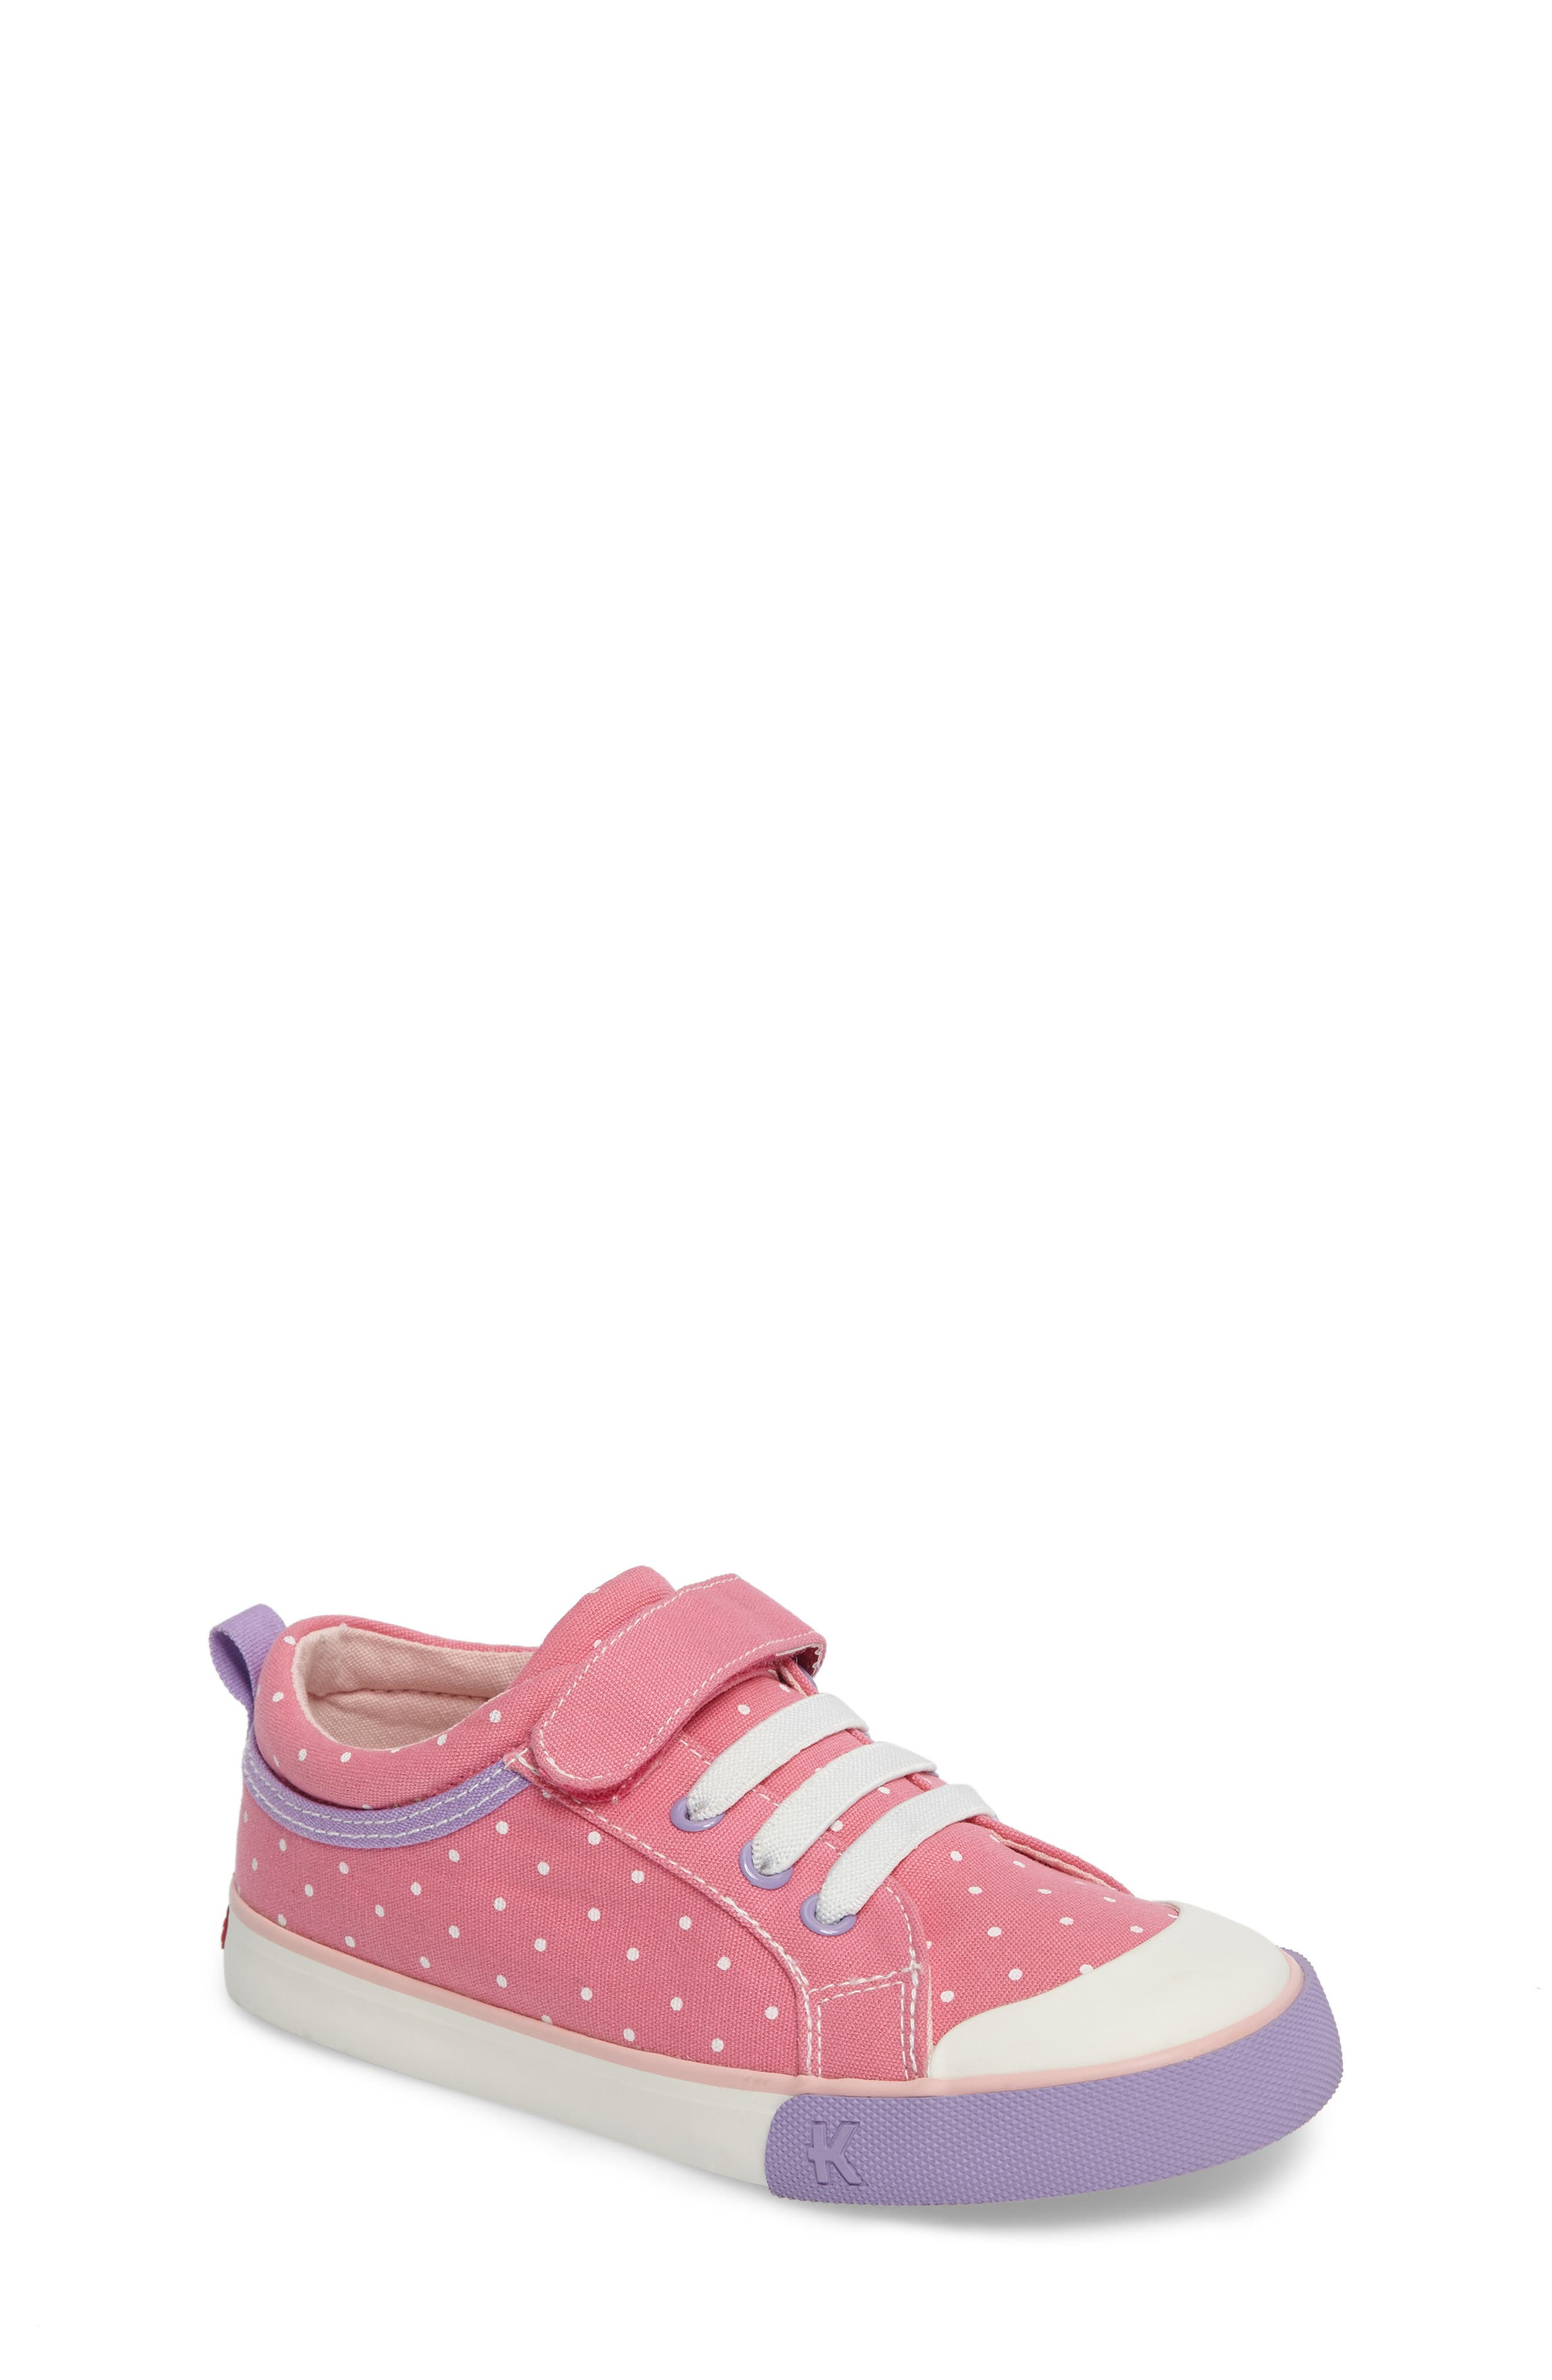 See Kai Run 'Kristin' Sneaker (Toddler & Little Kid)